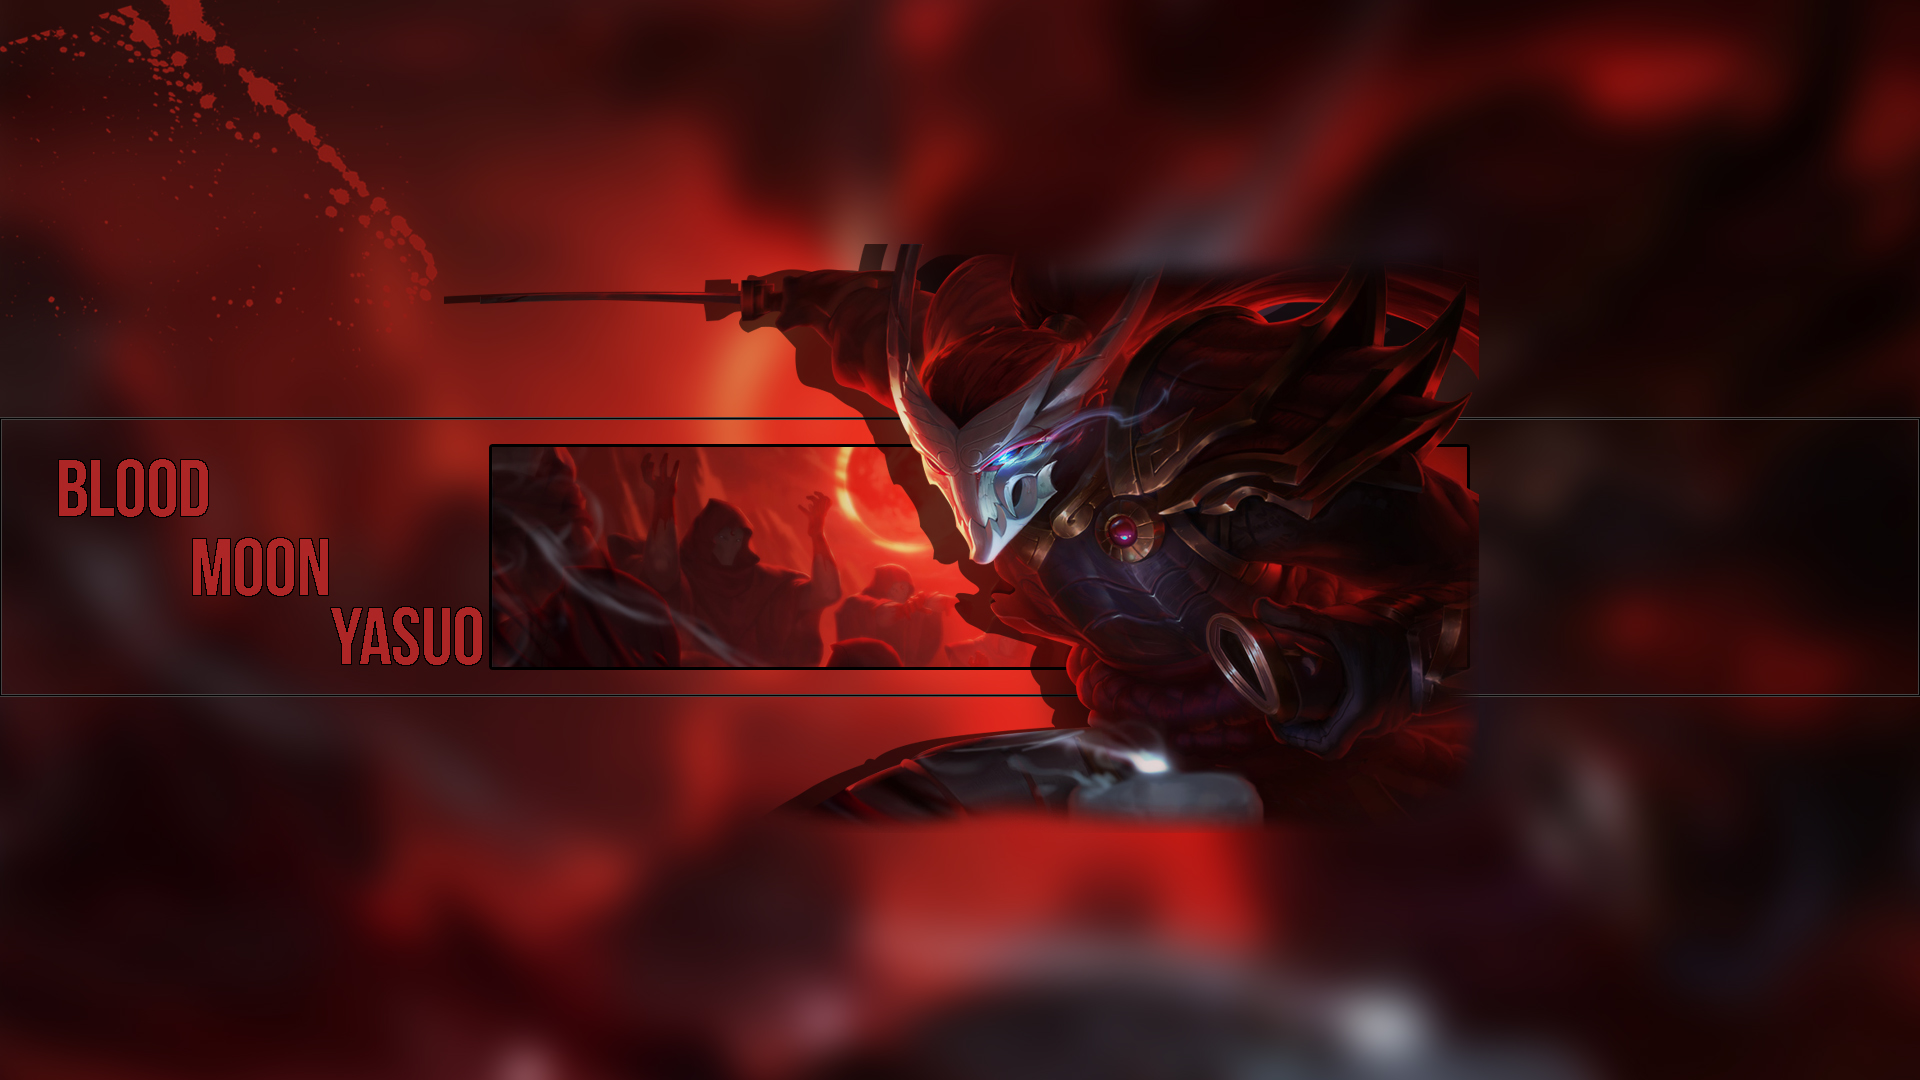 Blood Moon Yasuo Wallpaper 1920x1080